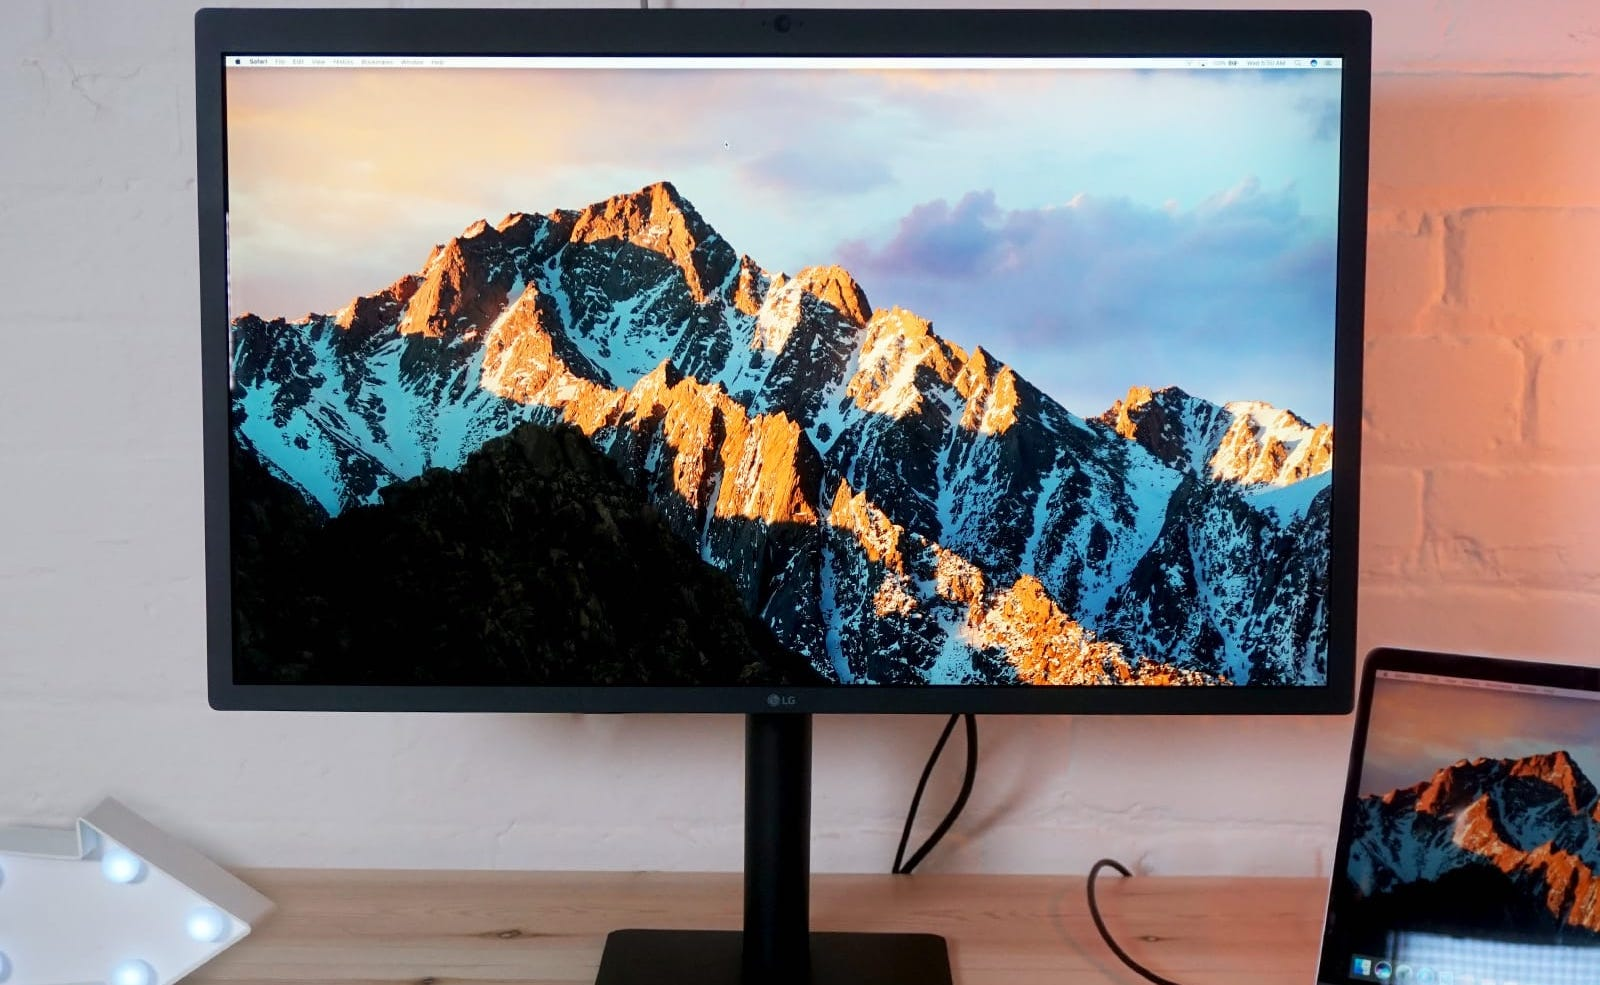 LG UltraFine 5K Display 27″ Monitor provides three USB-C ports for  accessories